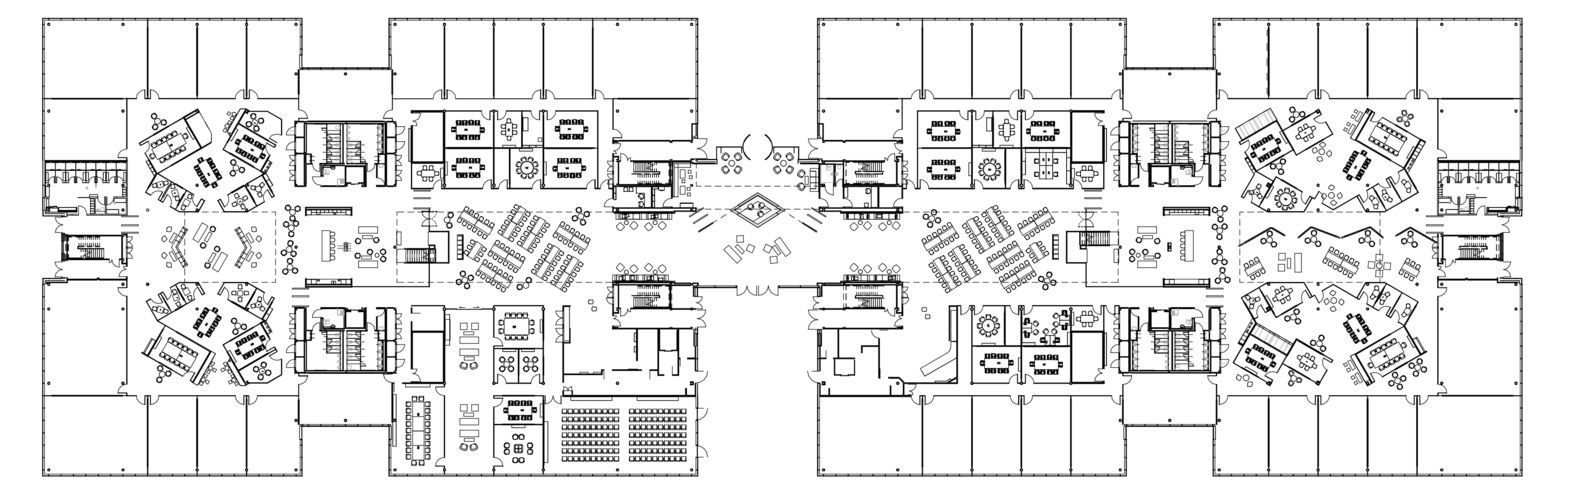 Pin On Drawings Plans Office